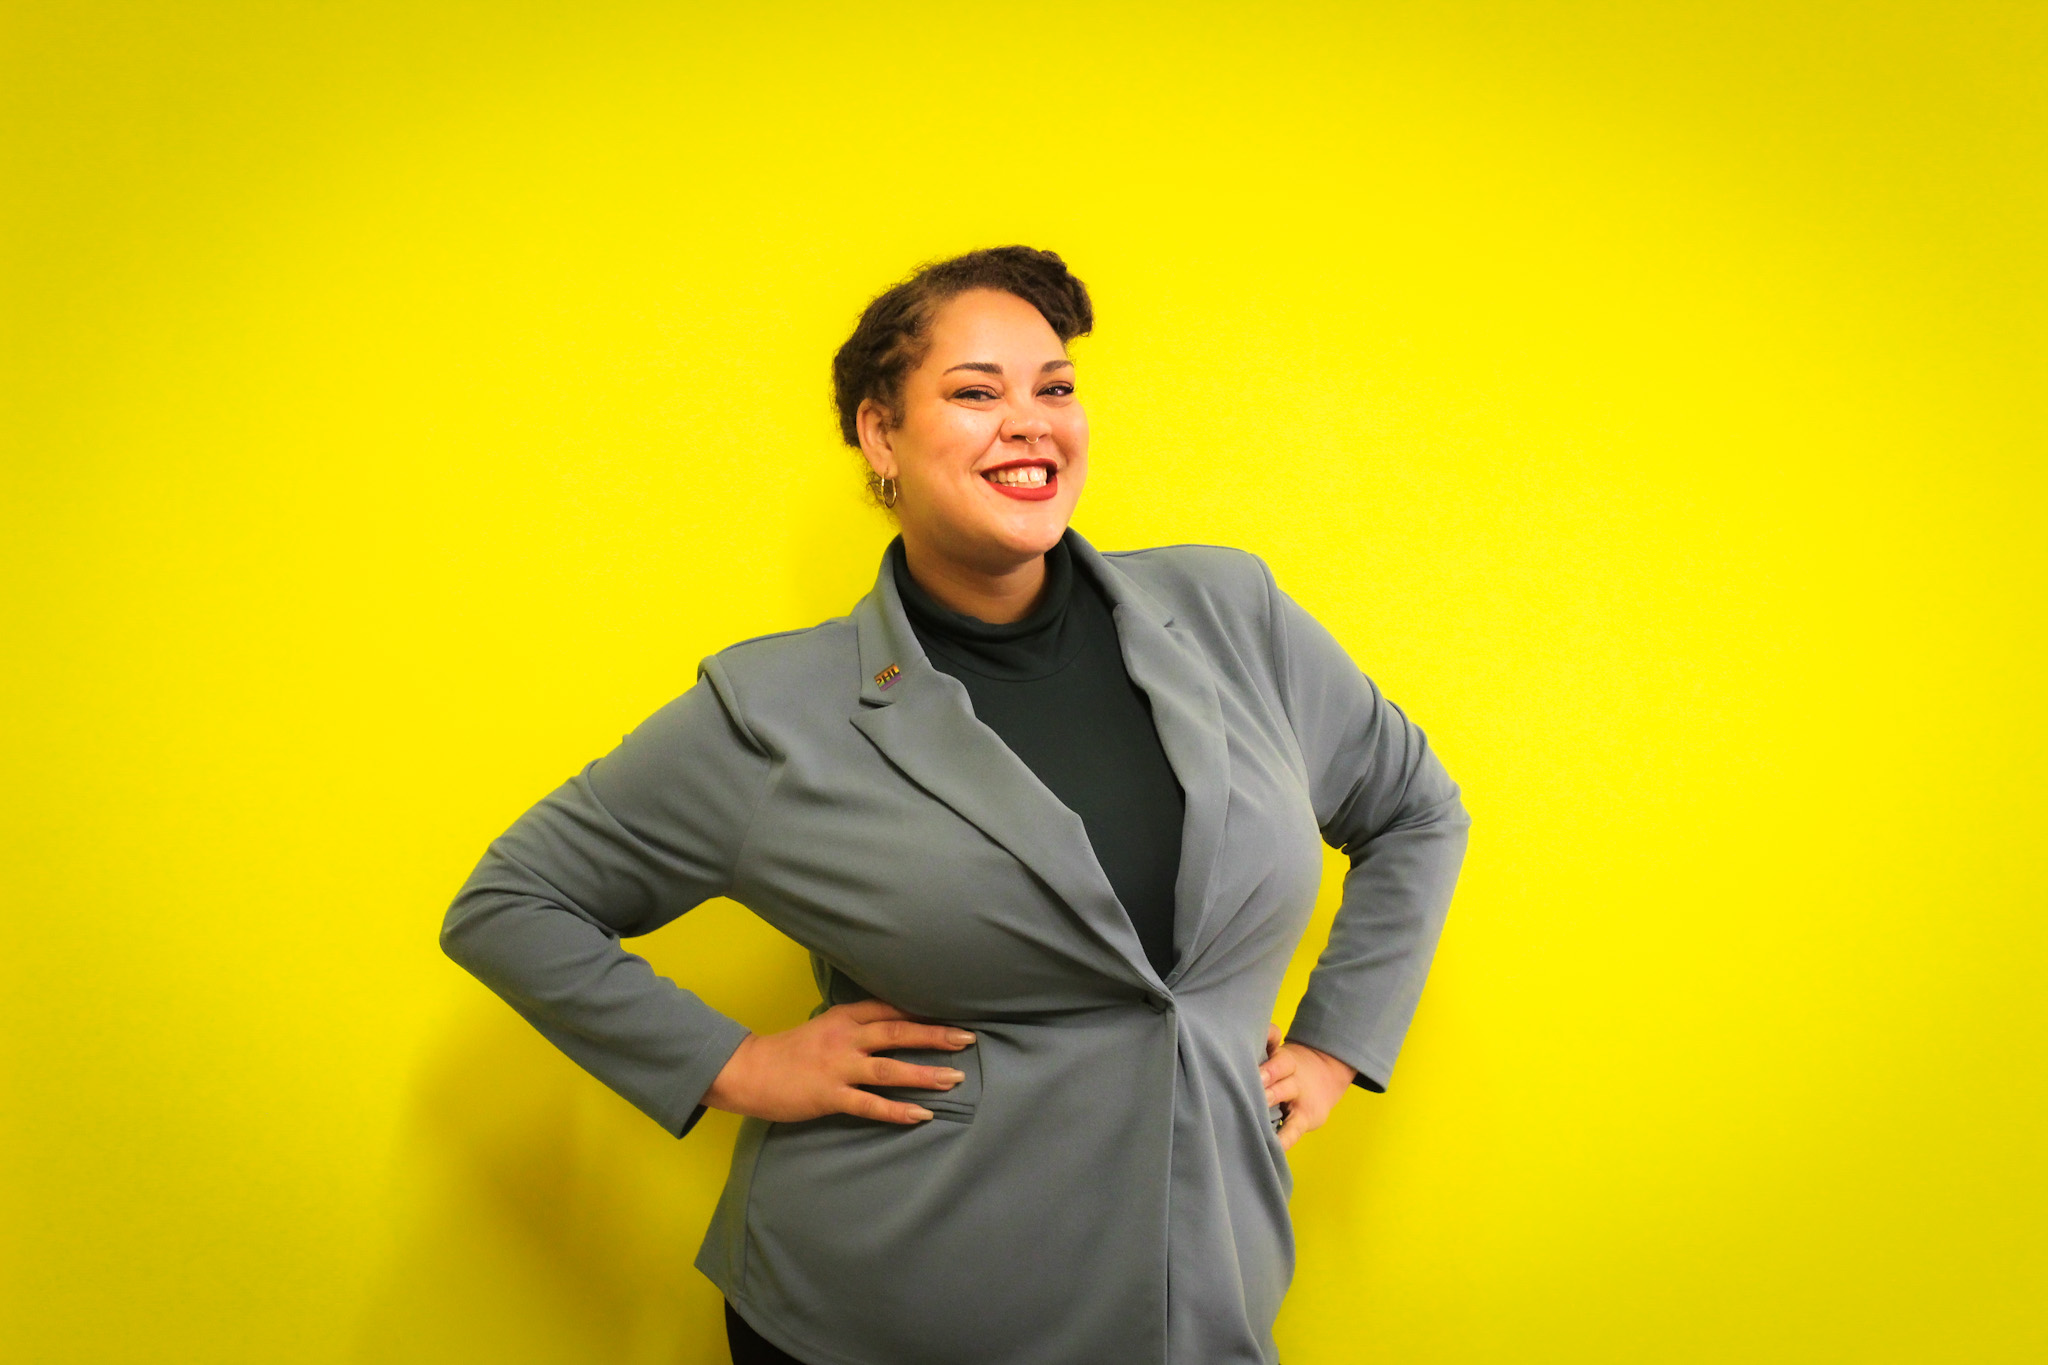 This is an image of galaei's Executive Director Ashley L. Coleman